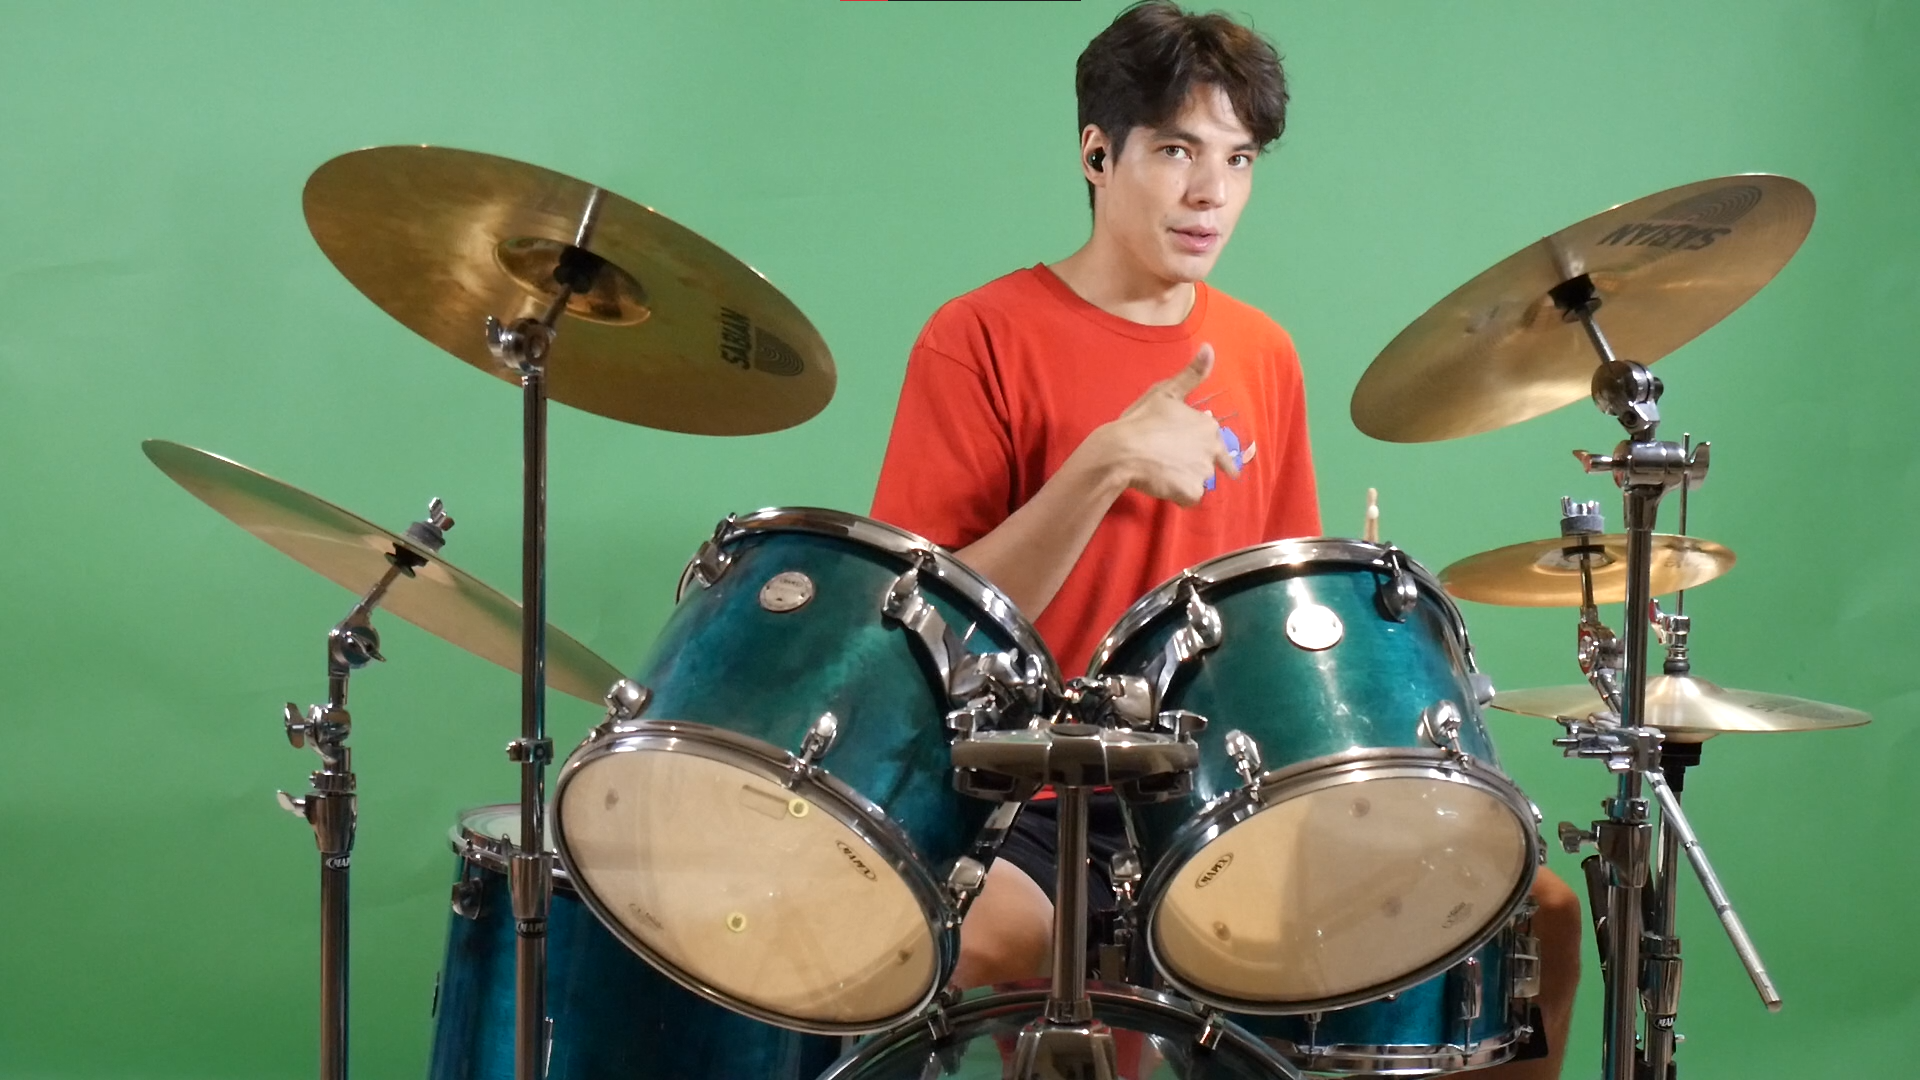 A picture of Nicolas Merlo in an orange t-shirt, sitting at a drum set